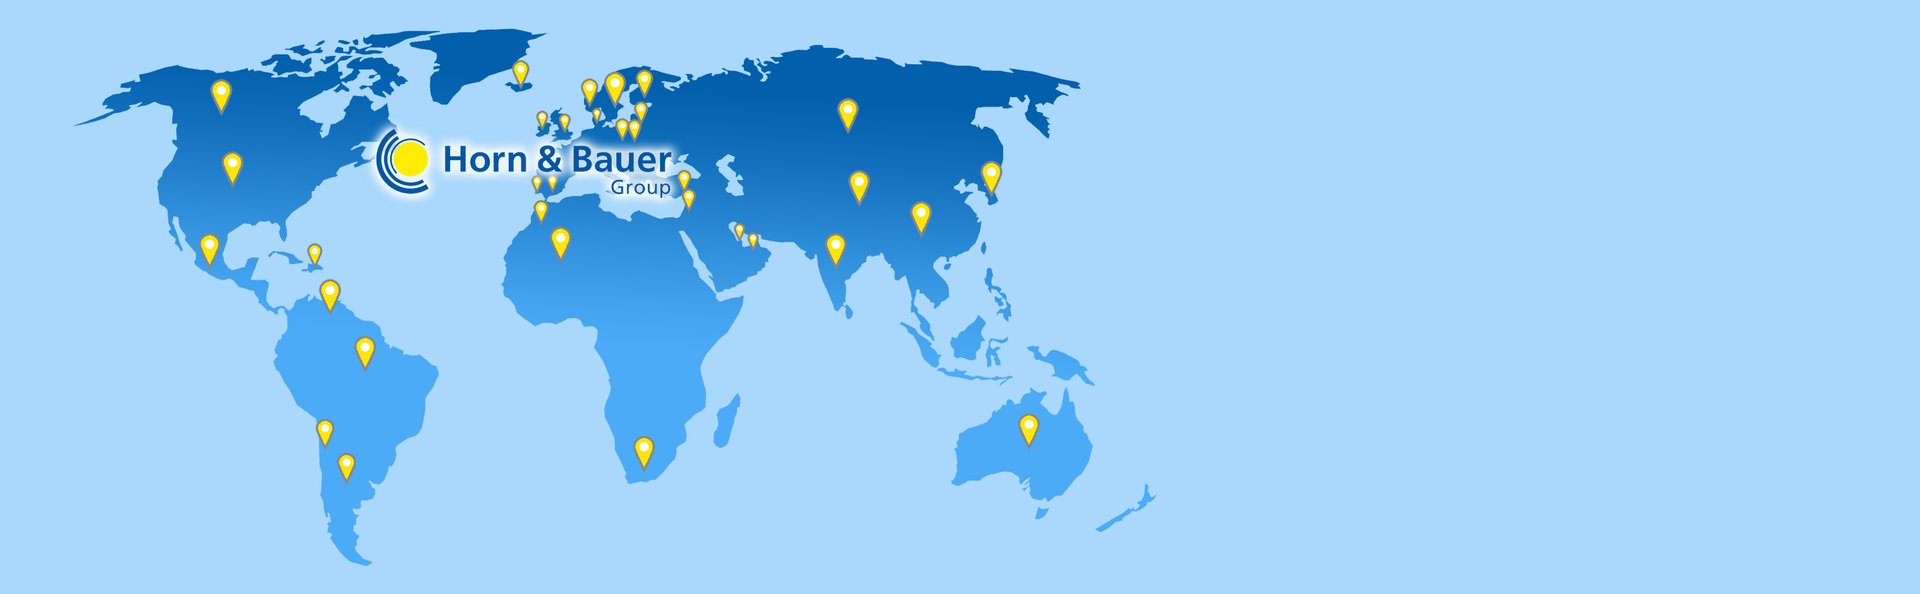 We are internationally positioned <br> and serve customers all over the world